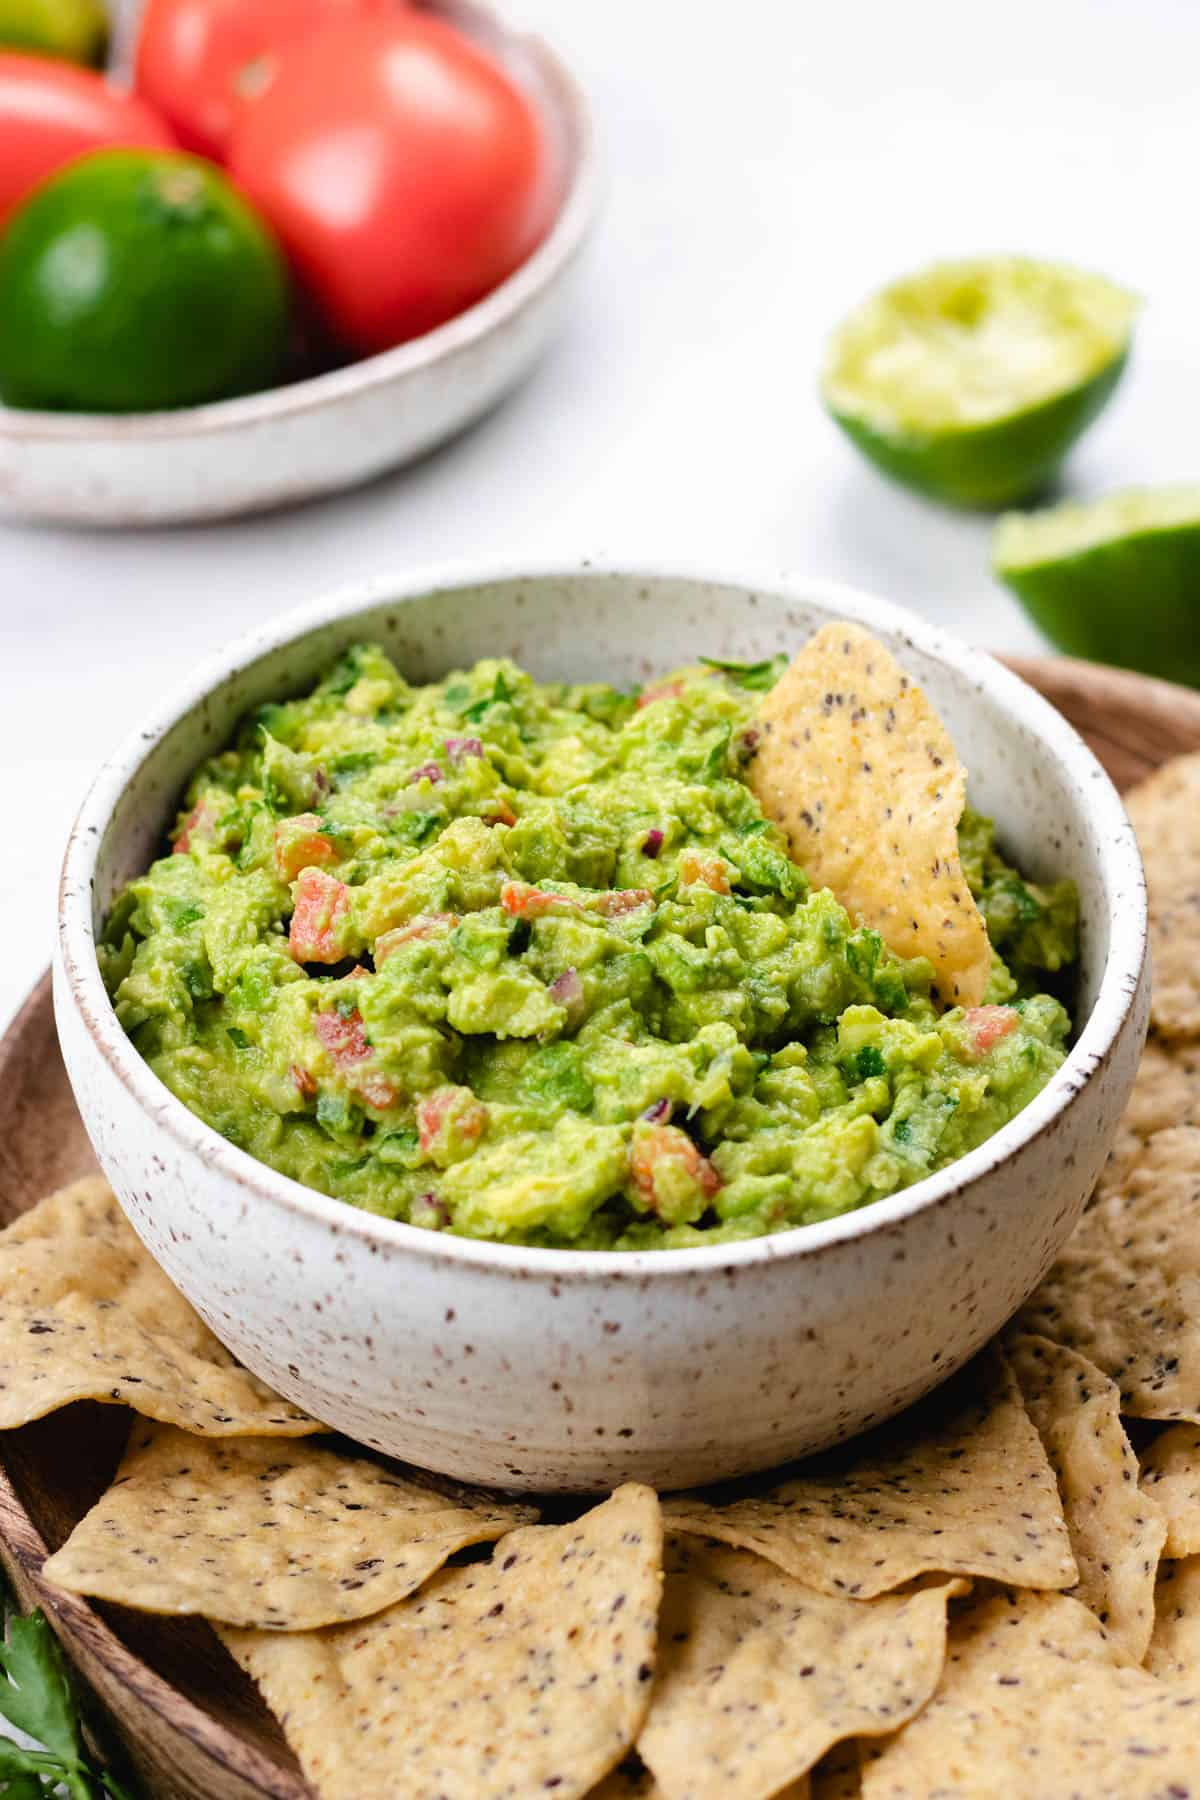 Guacamole in a white bowl with tortillas around it.